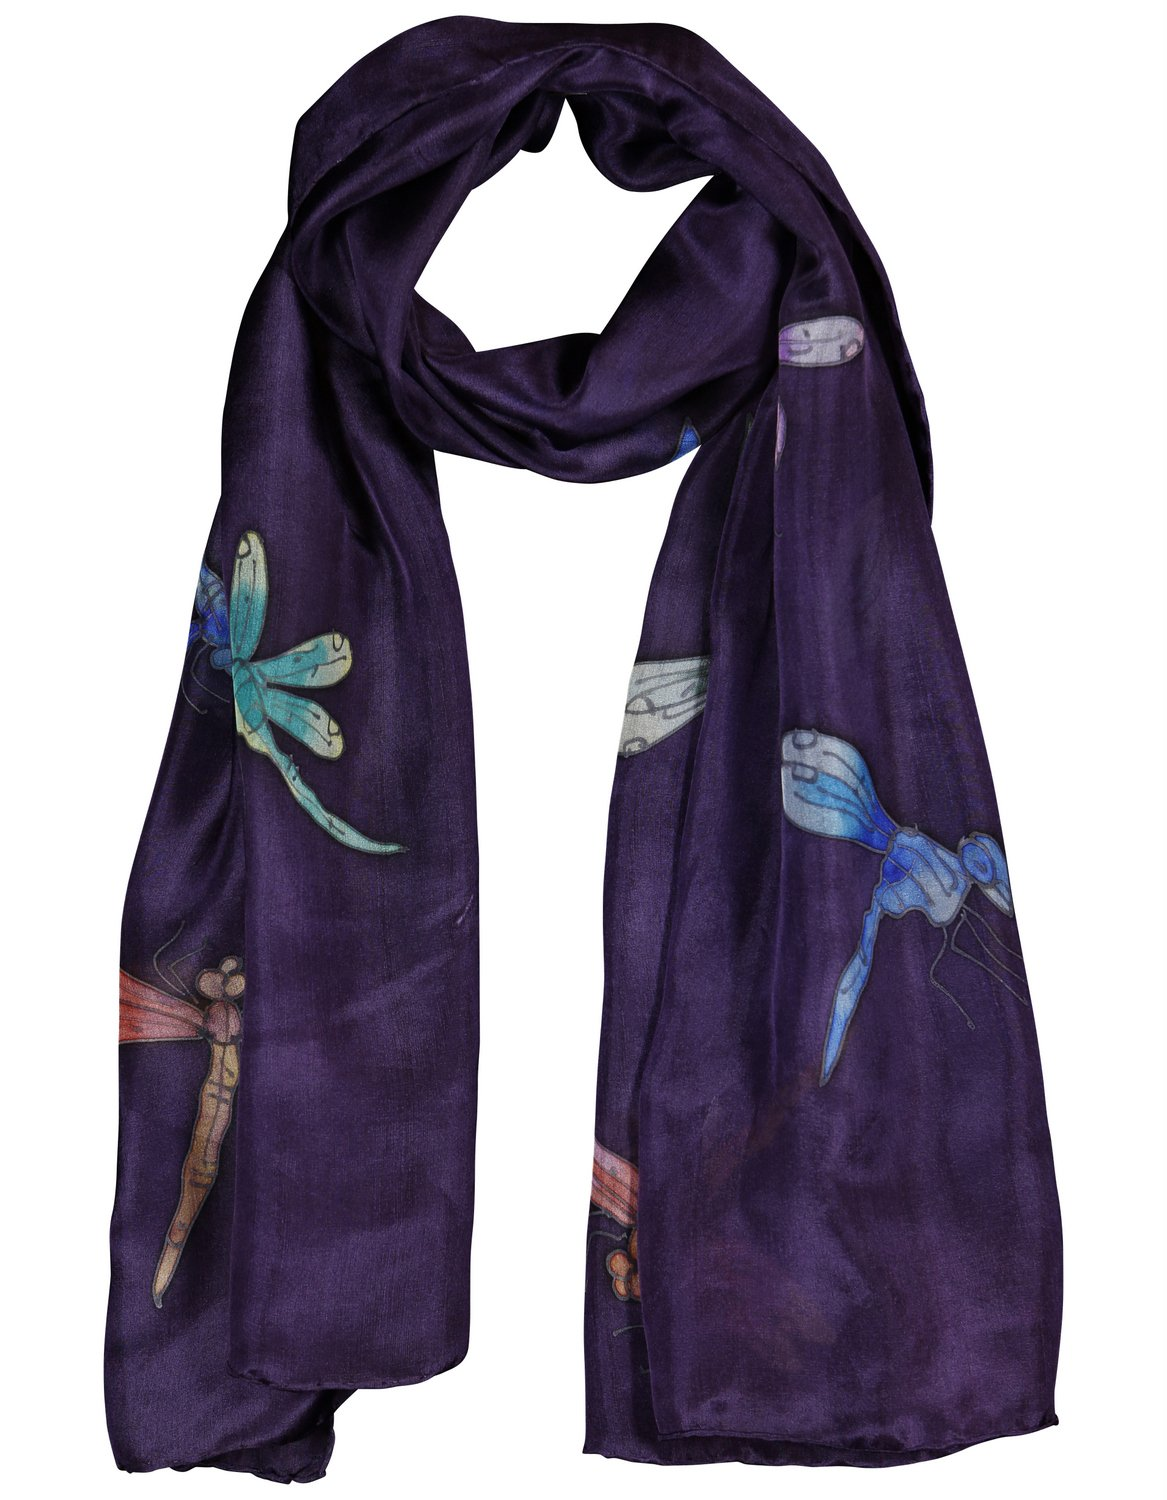 Invisible World Women's Silk Scarf Hand Painted Dragonfly 7202090101